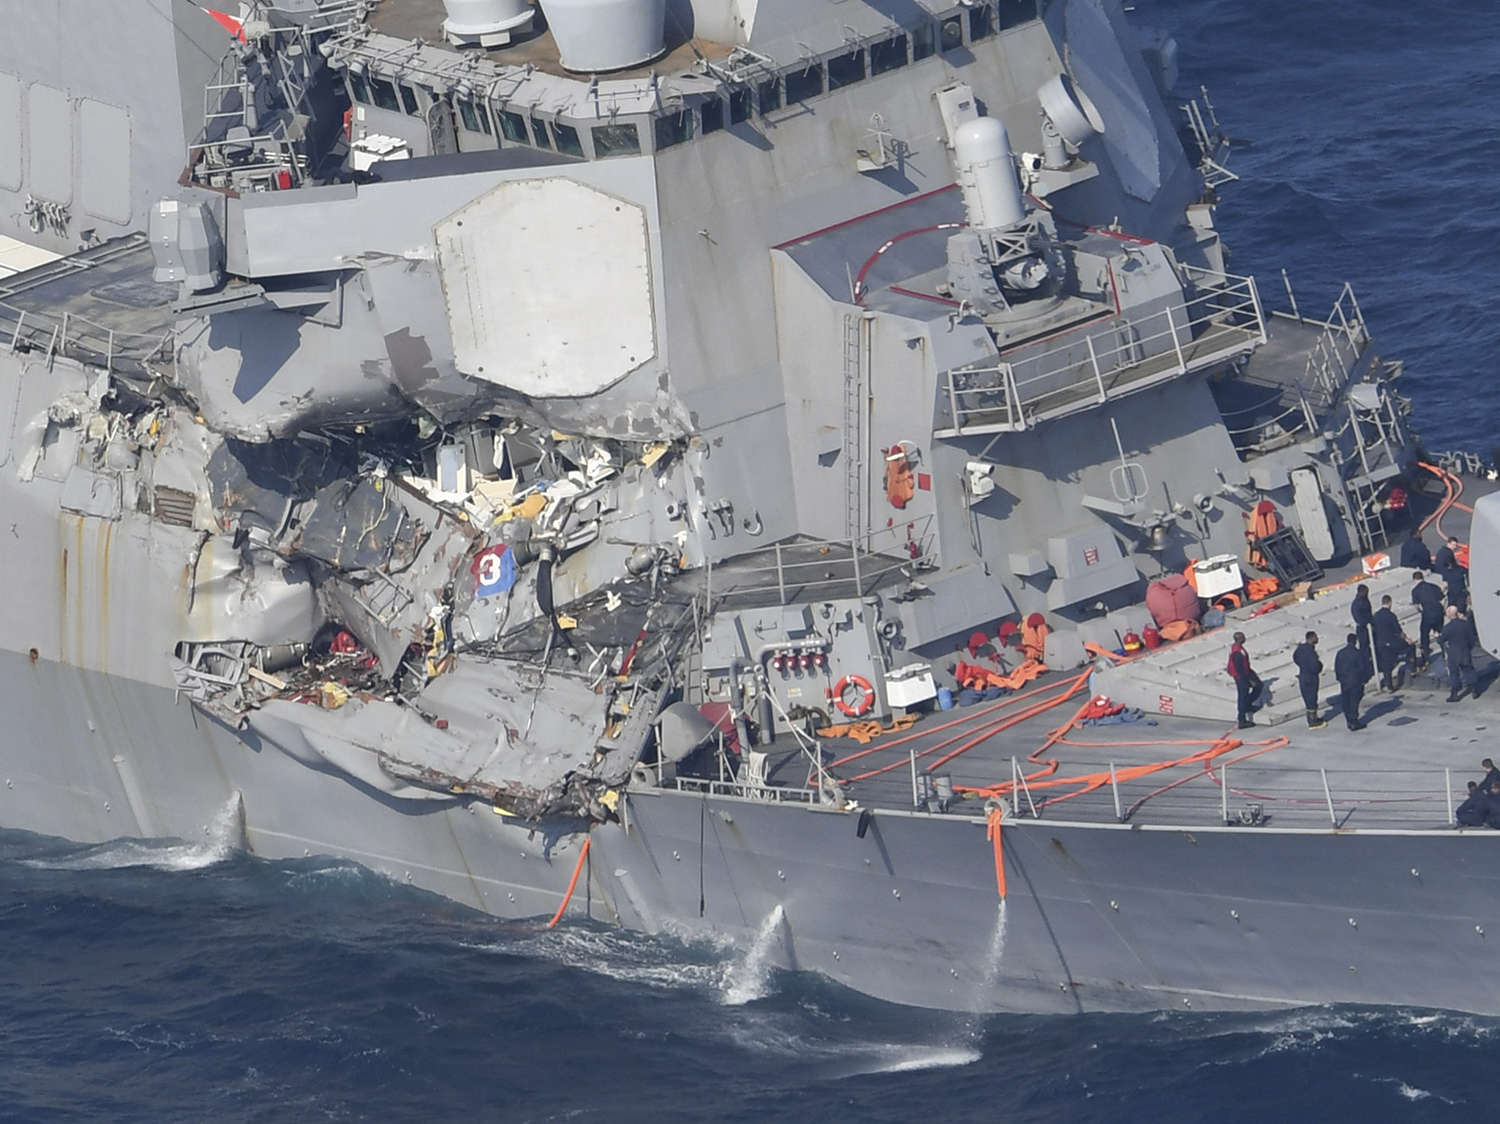 U.S. Navy Seeks to Prosecute Top Officers for Crashes